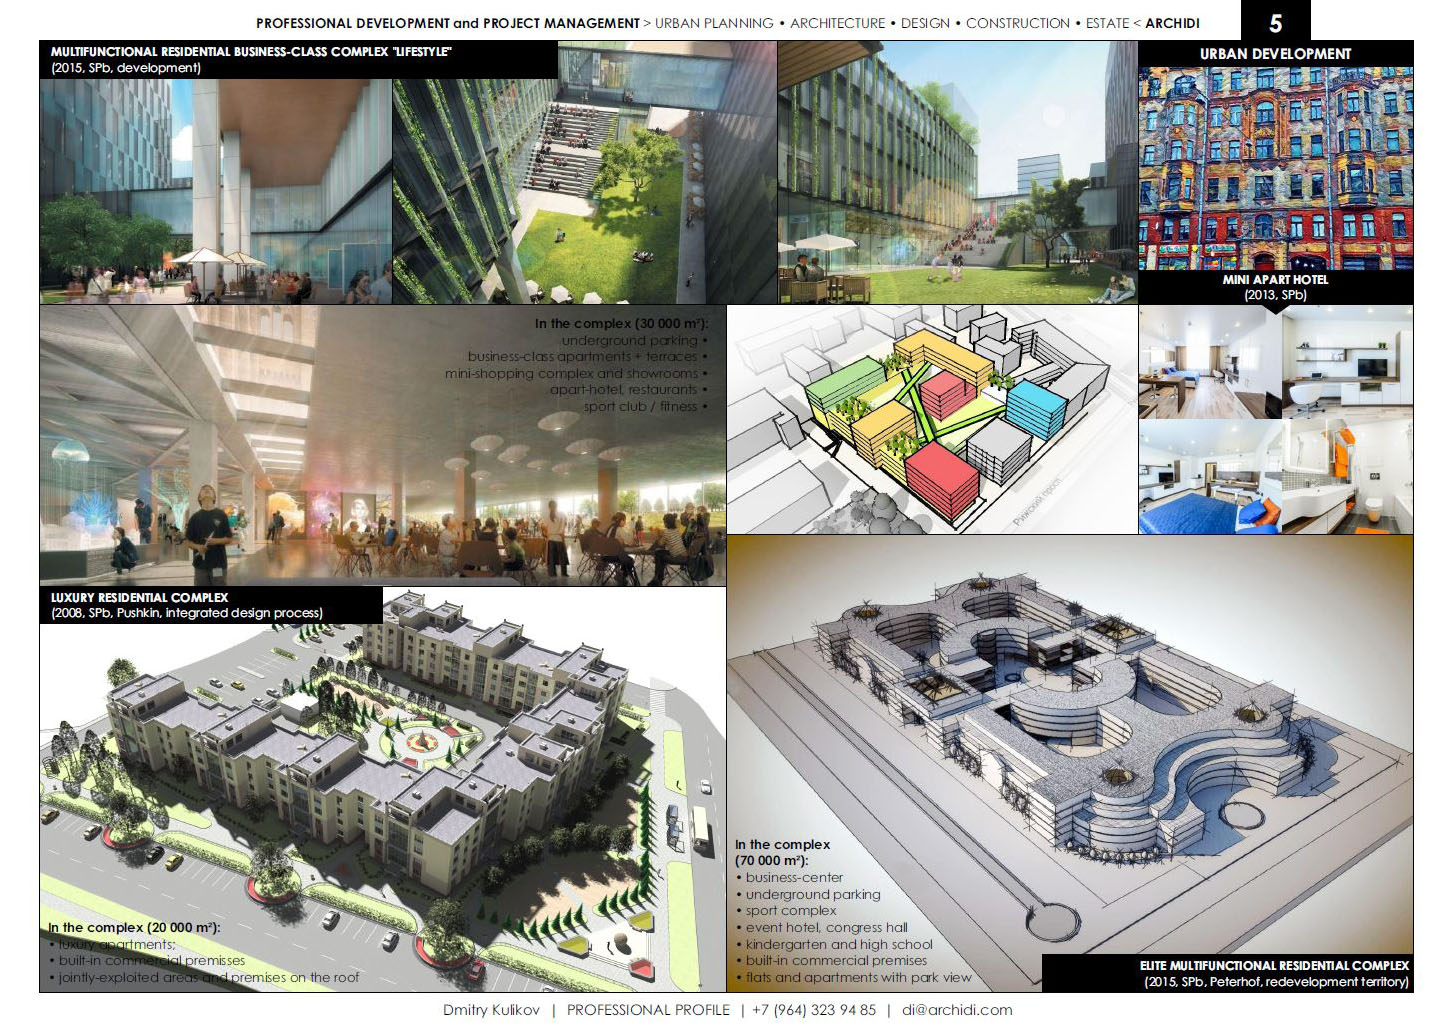 archidi.com - PORTFOLIO - Urban development